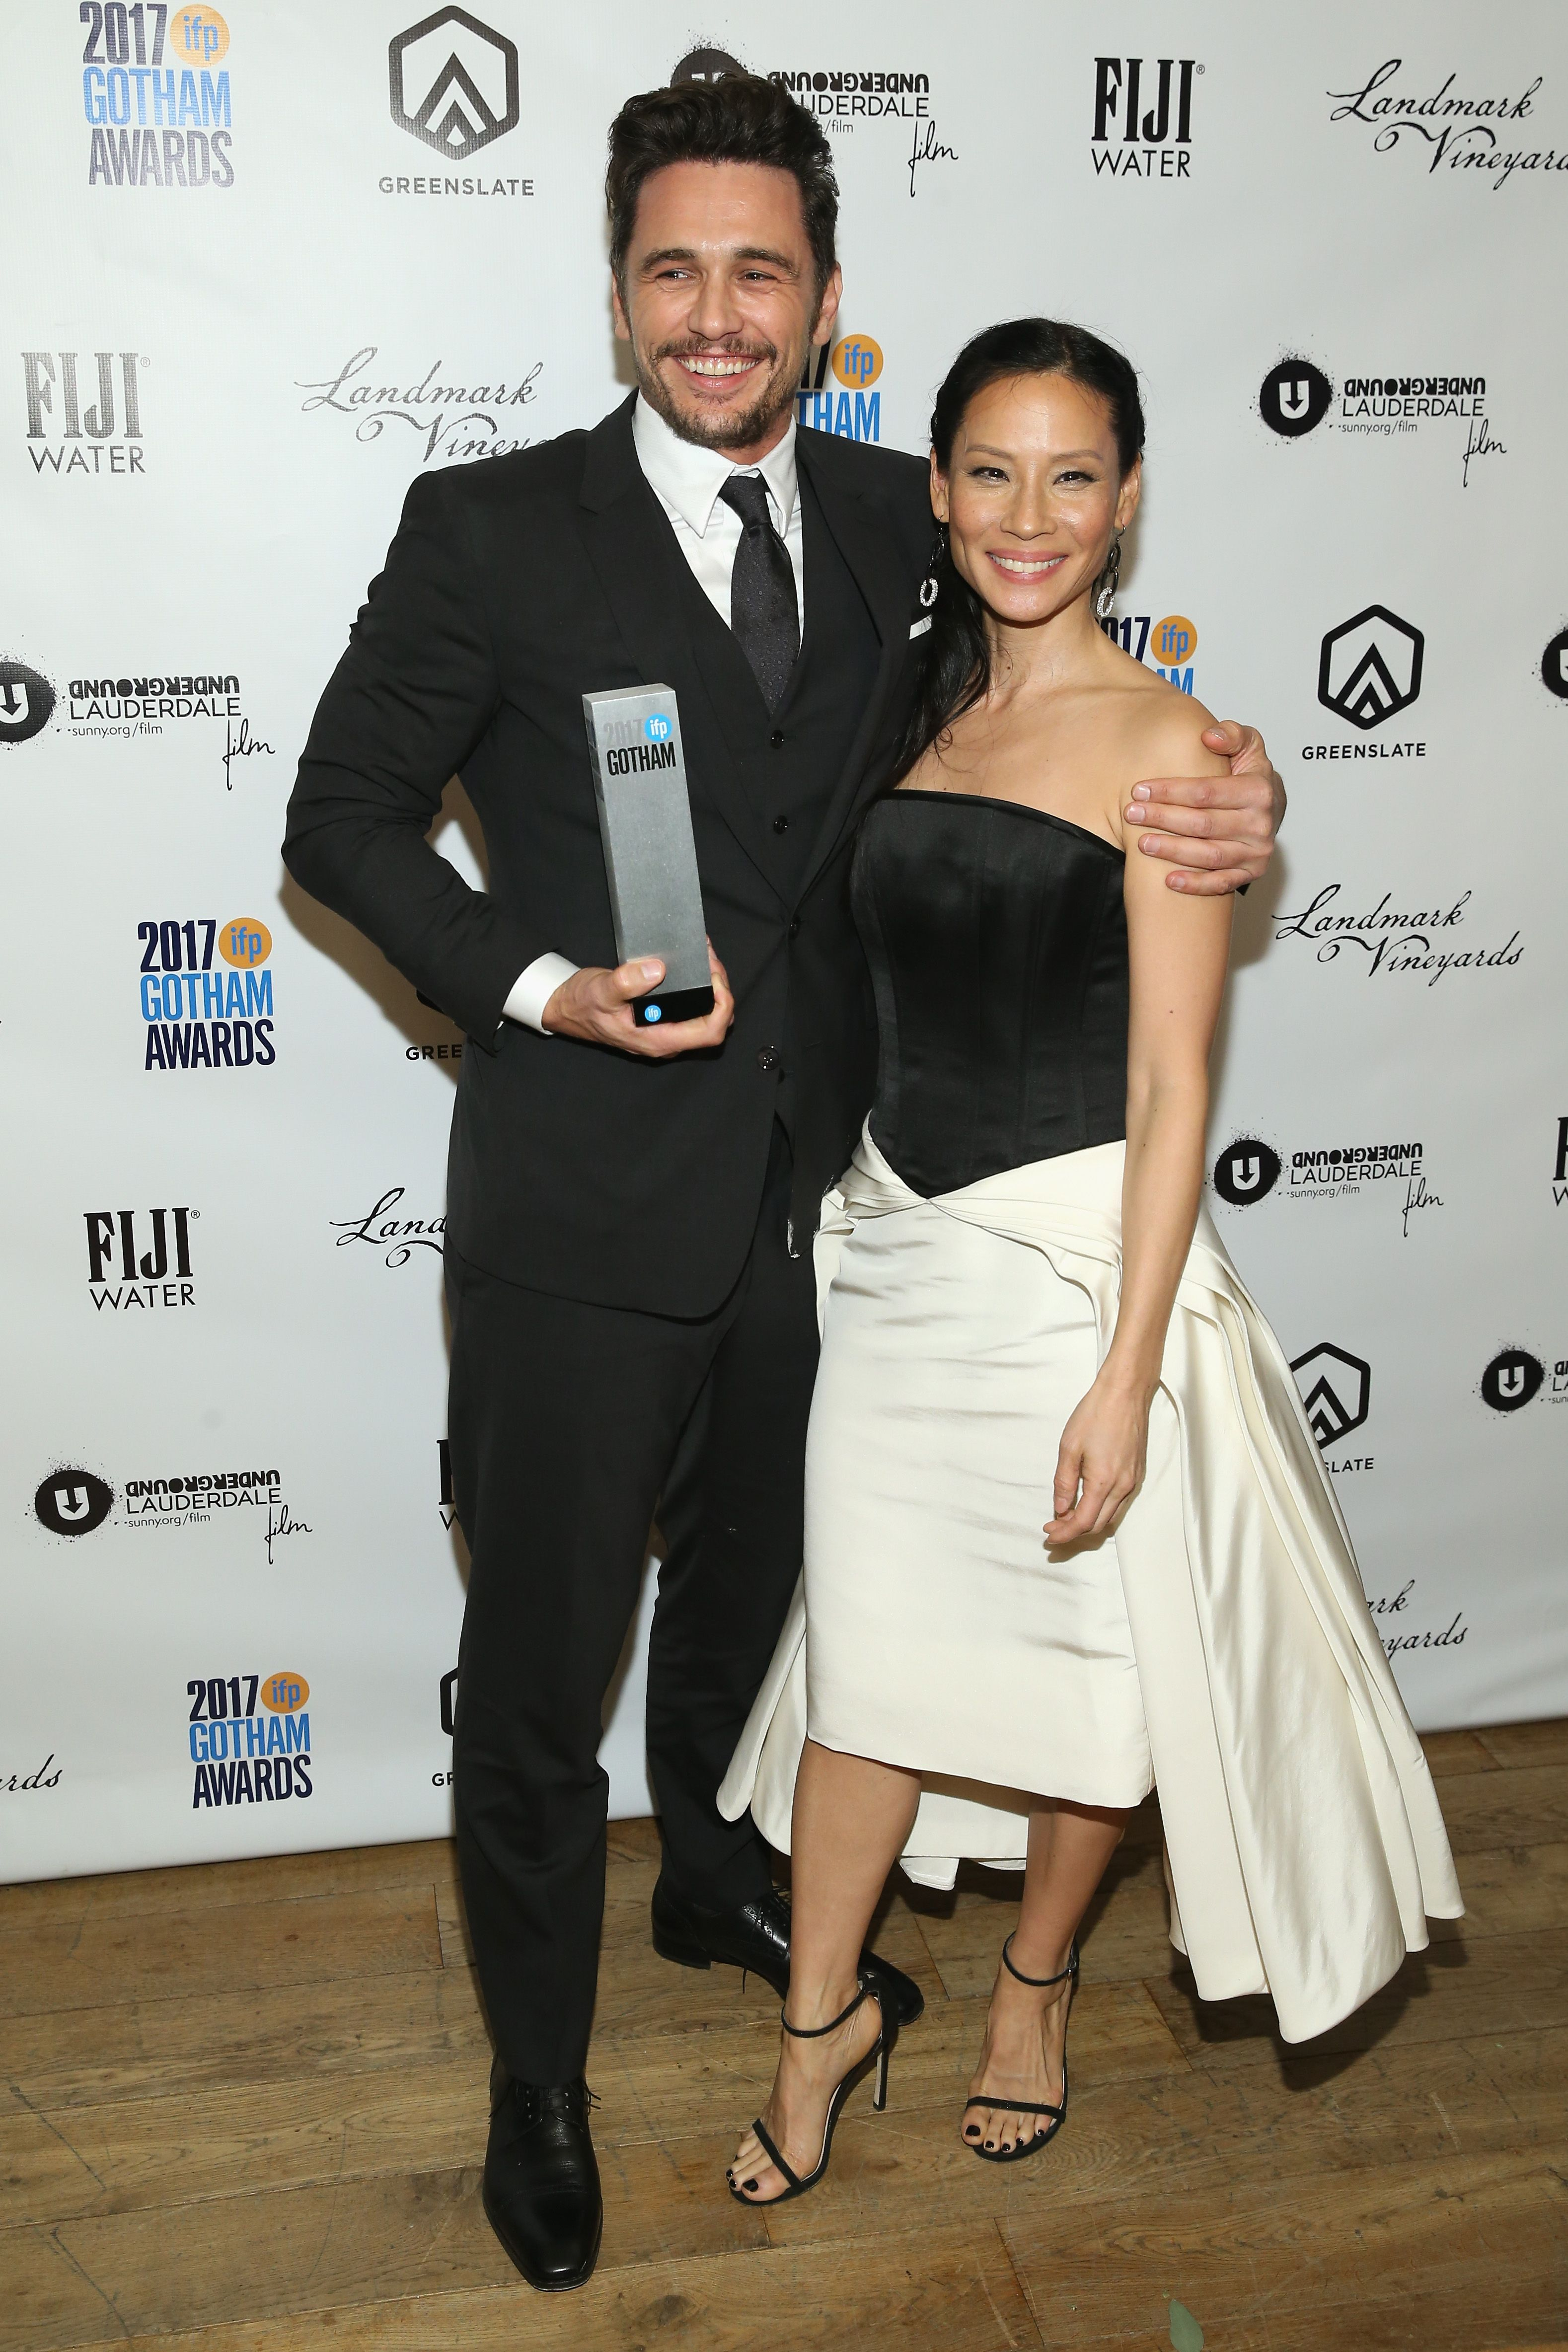 Lucy liu with james franco at the 2017 gotham awards in new york james franco nvjuhfo Choice Image